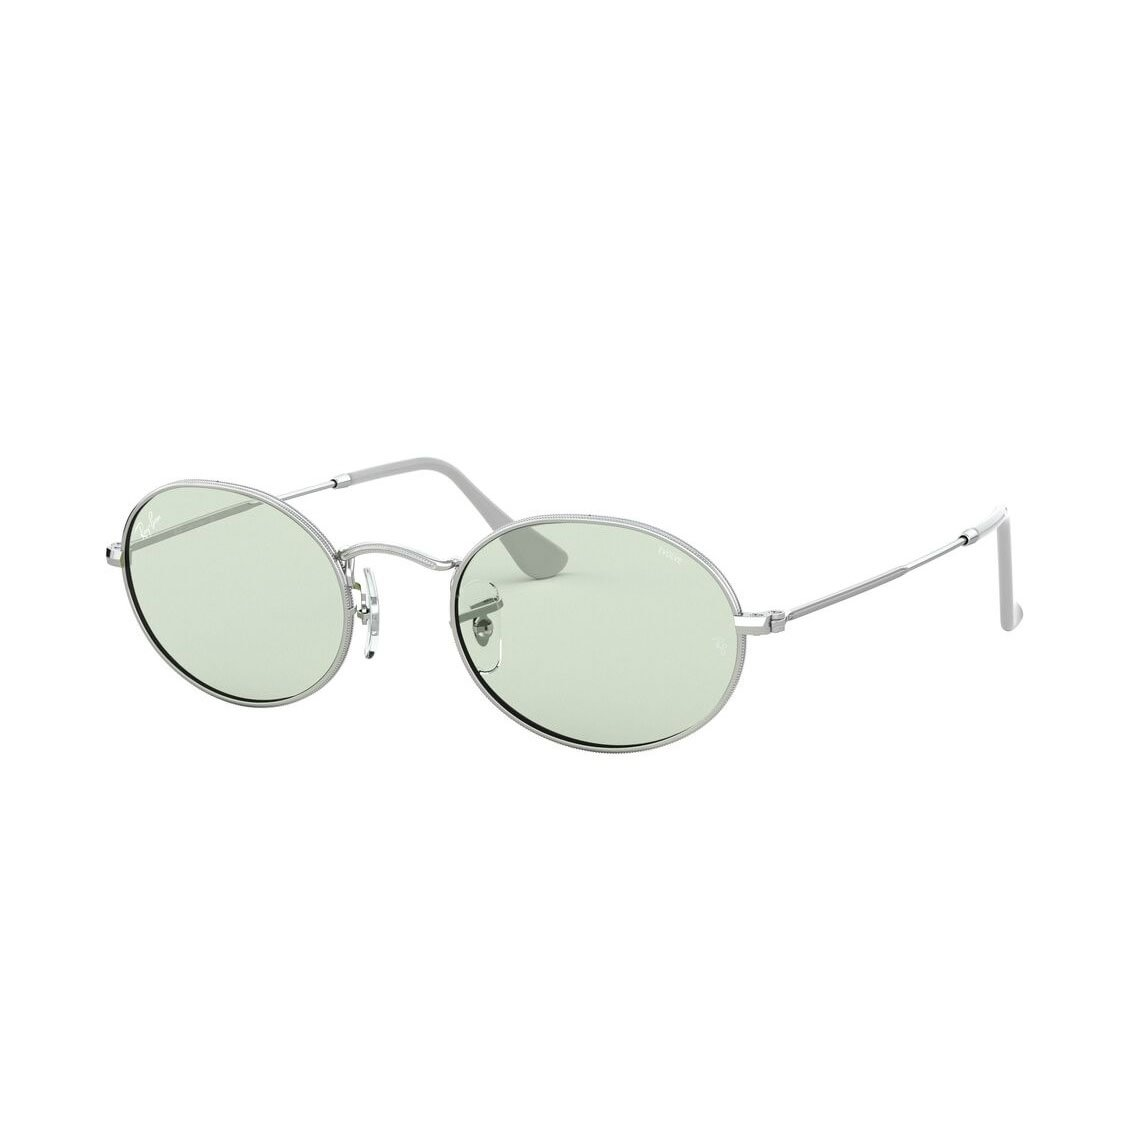 Ray-Ban Oval Solid Evolve  RB3547 003/T1 5121